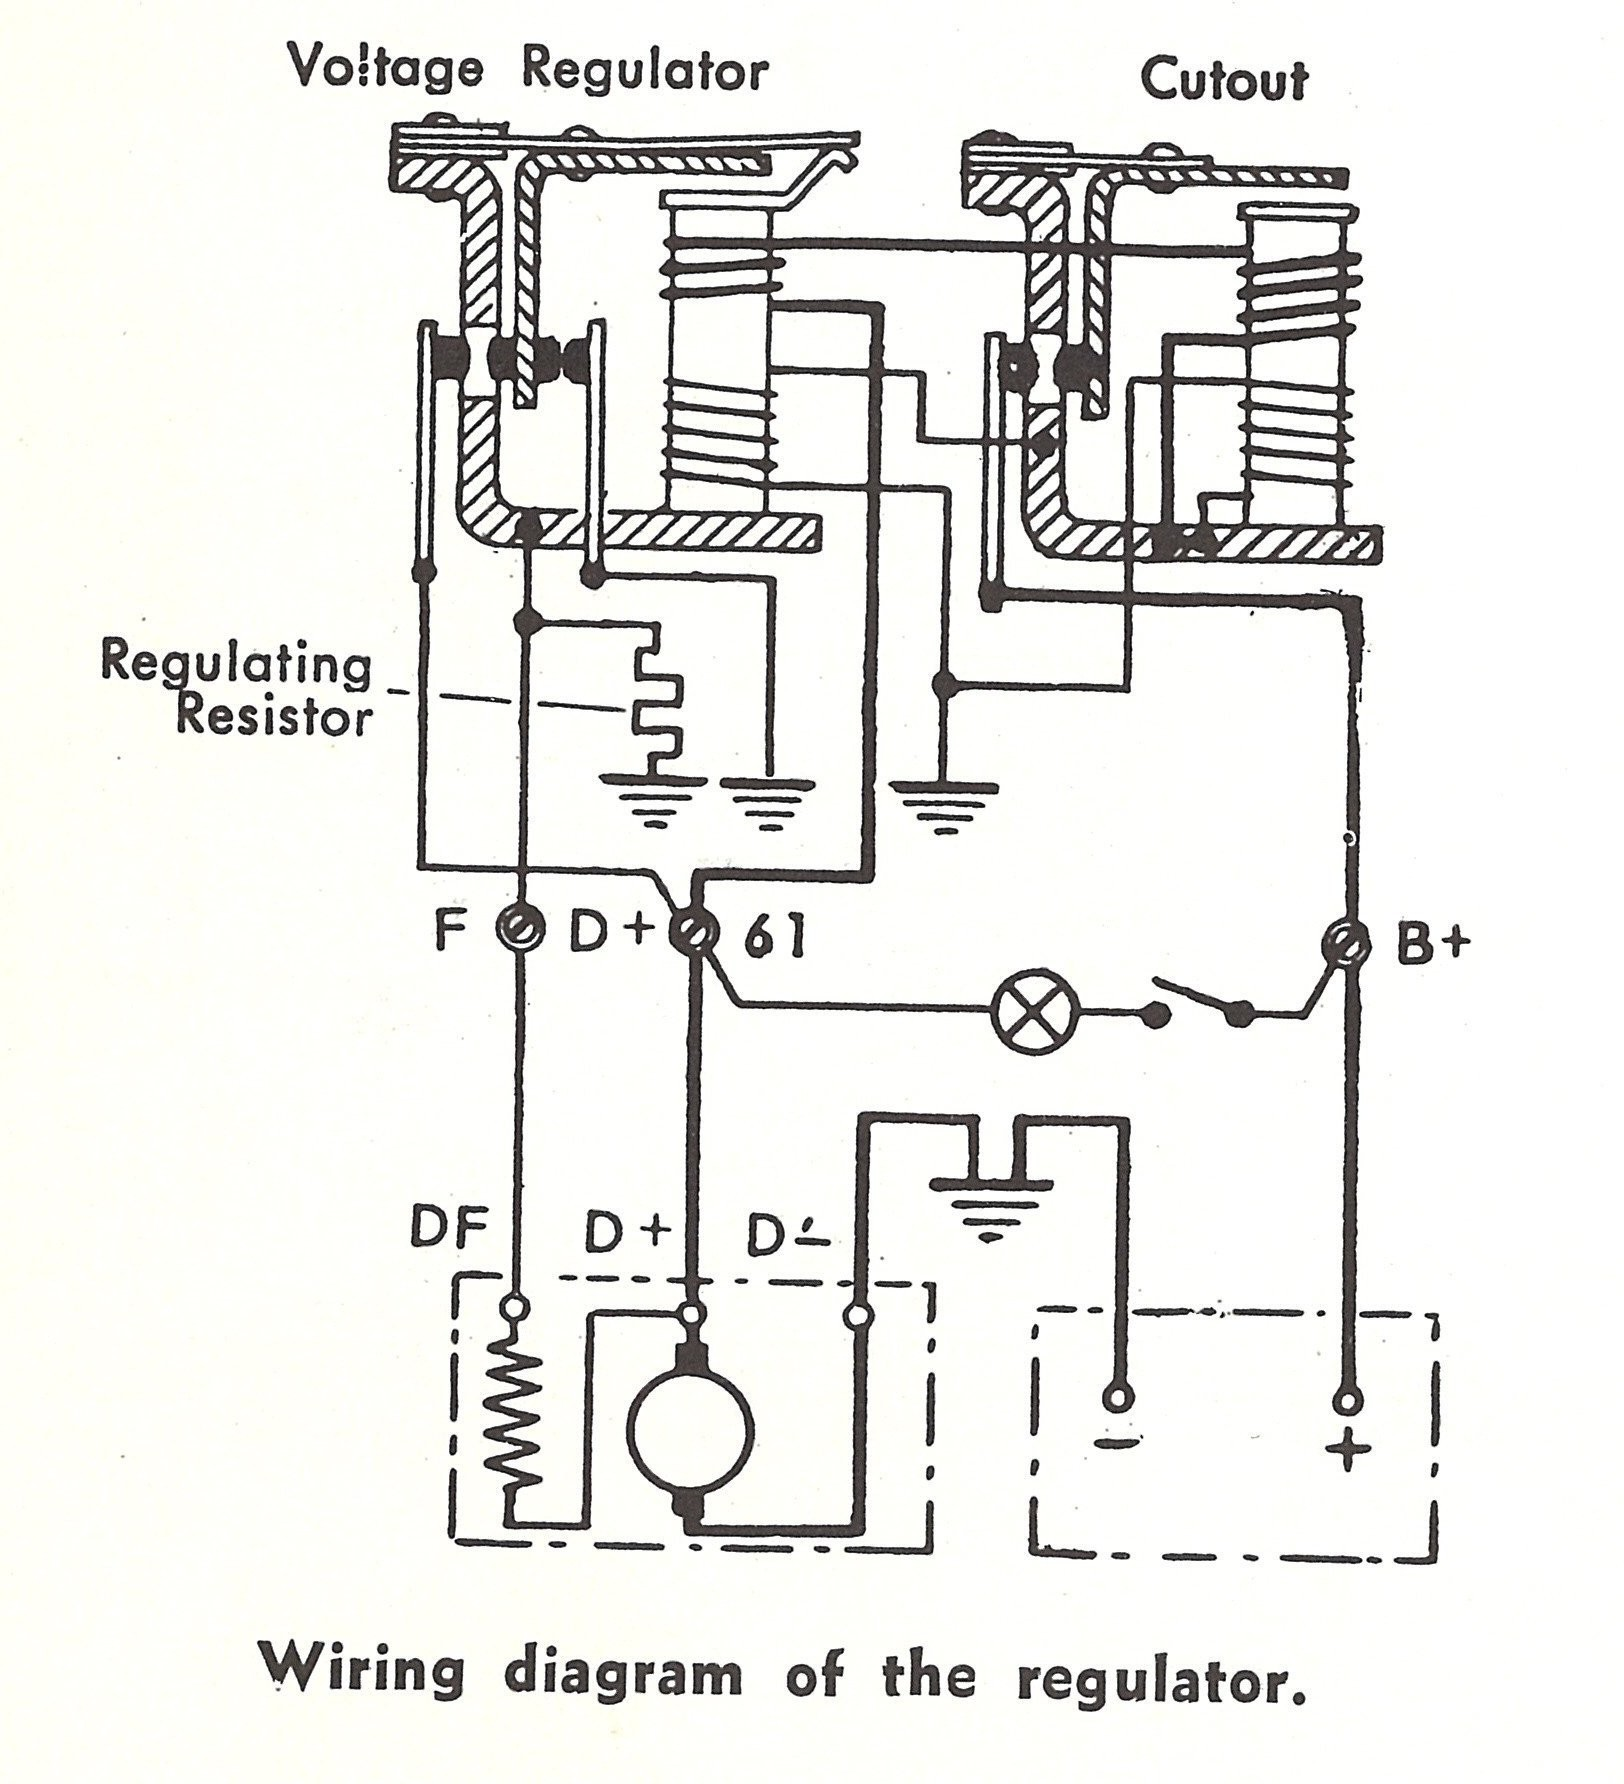 hight resolution of kohler voltage regulator wiring diagram wiring diagrams munchkin boiler wiring diagram 10 hp kohler wiring diagram